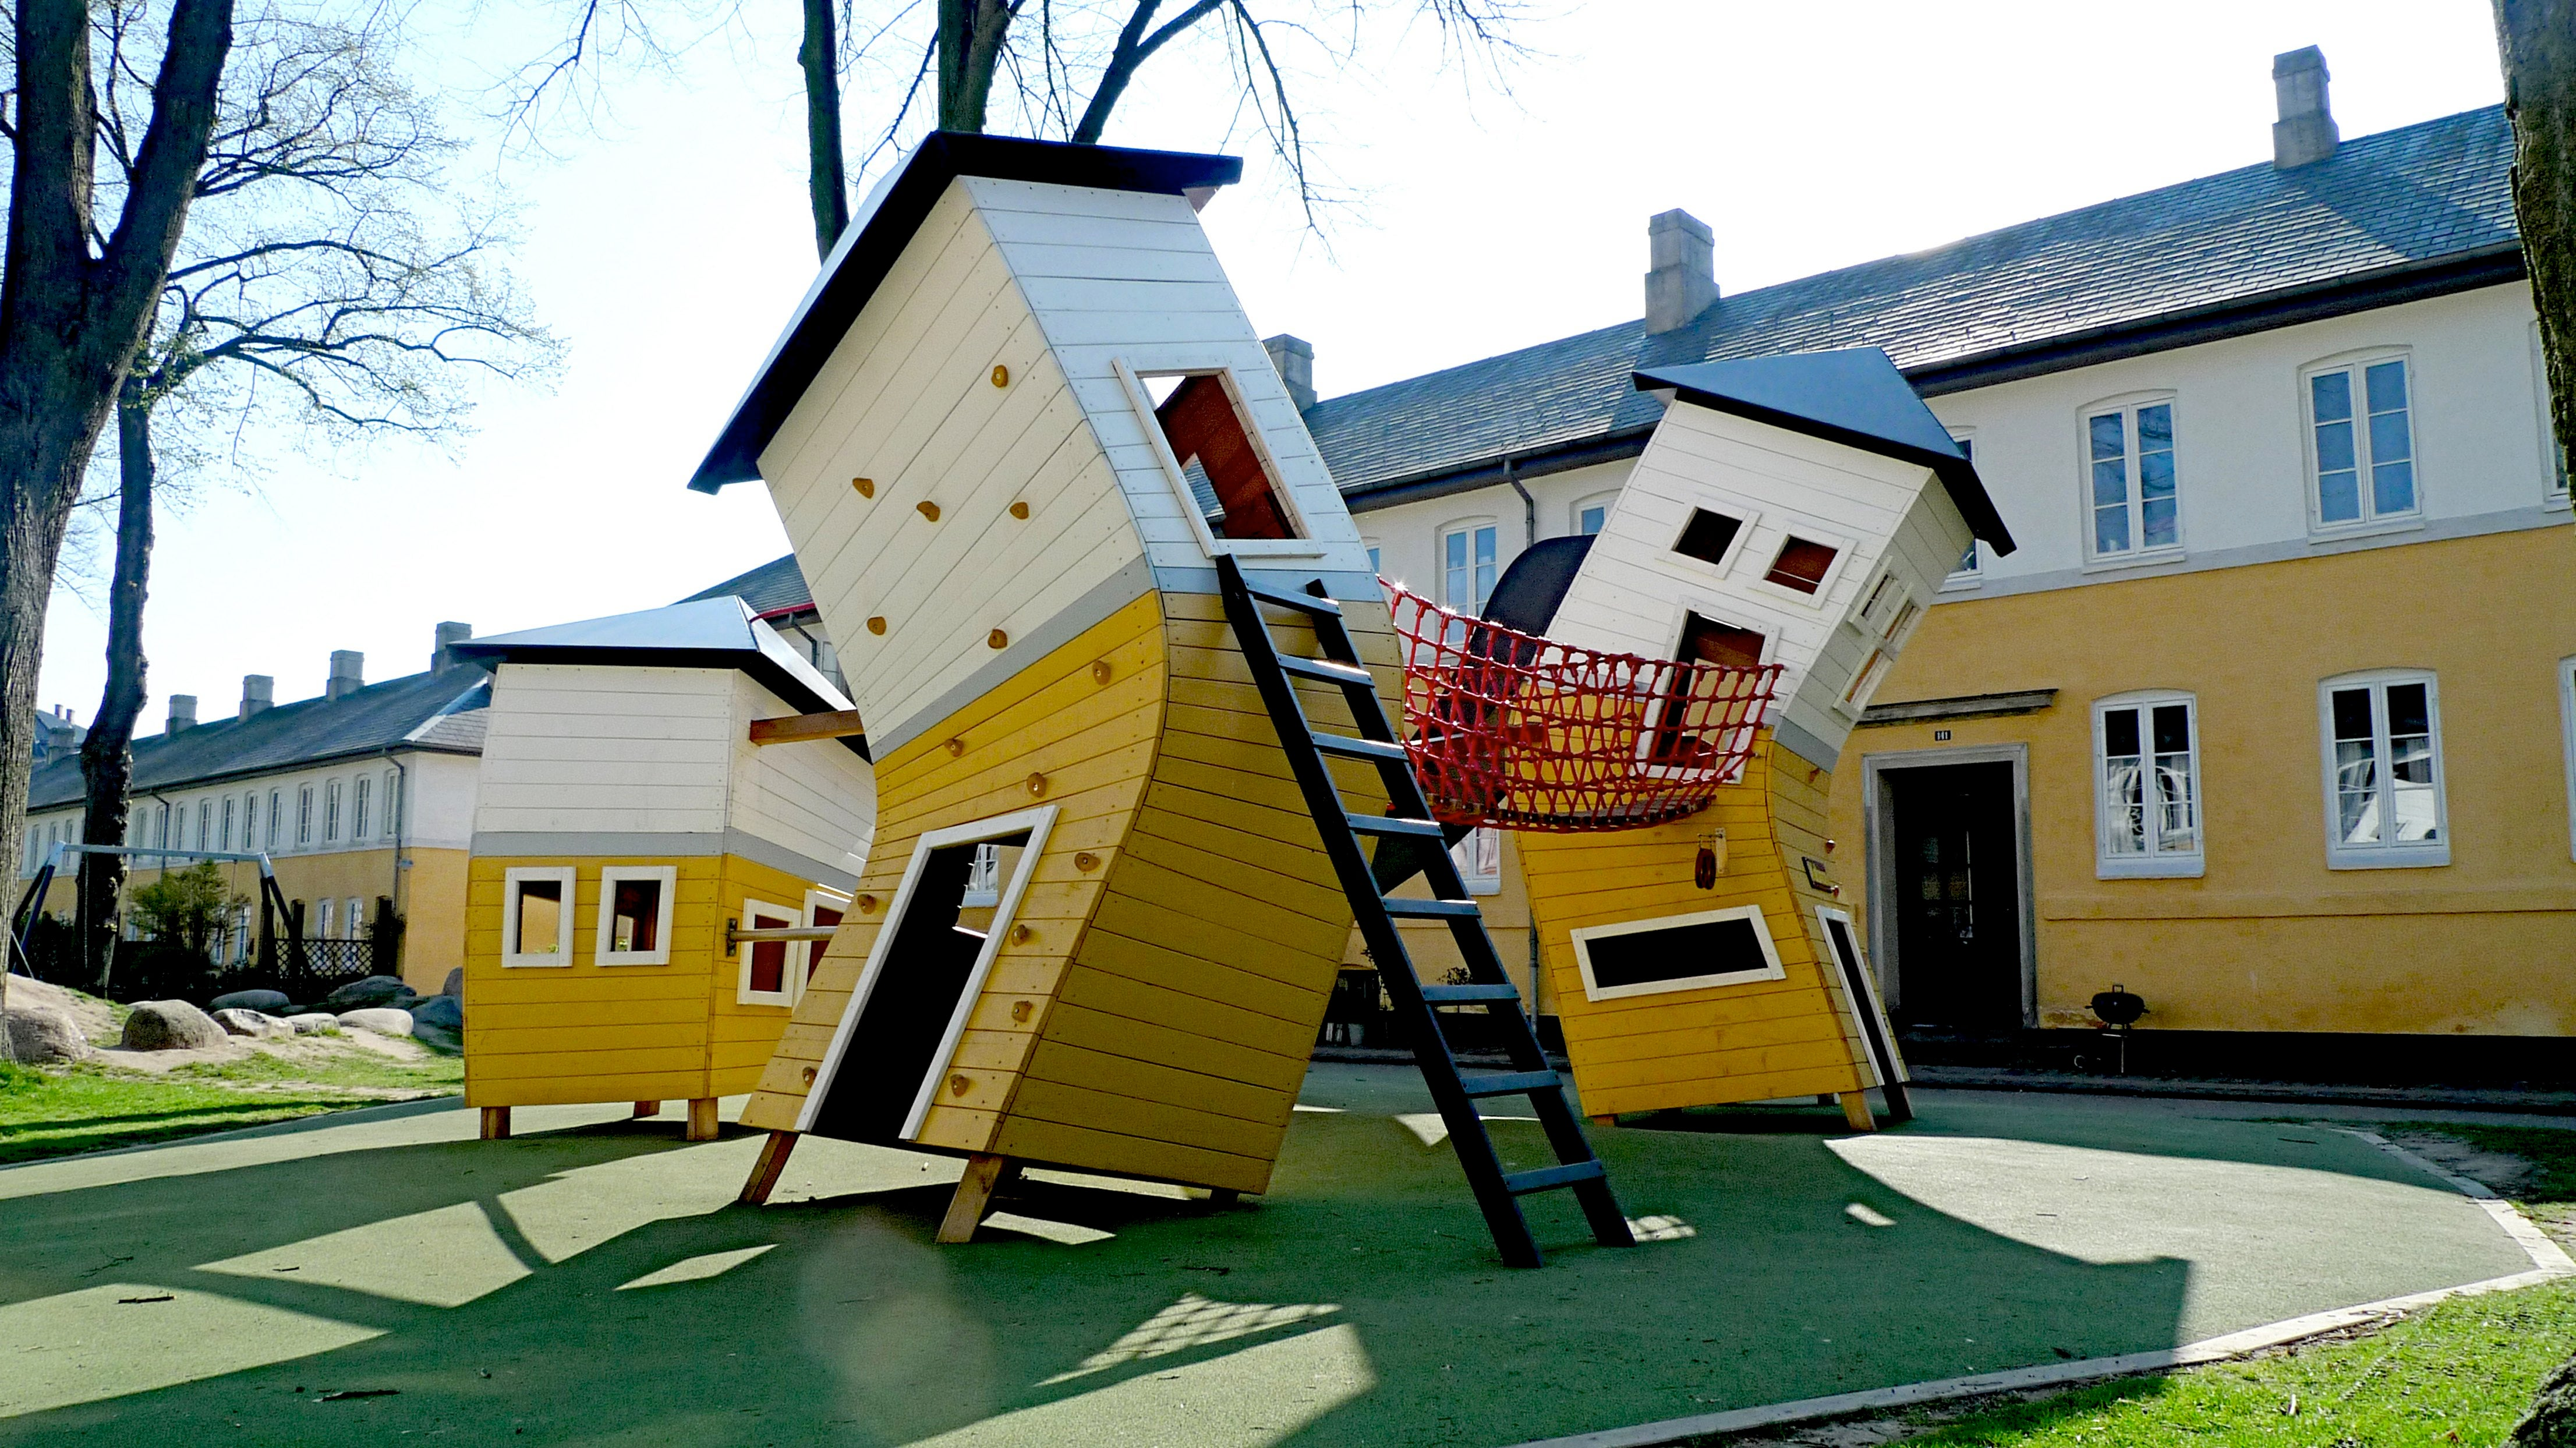 The Most Amazing Playgrounds in the World (PHOTOS)